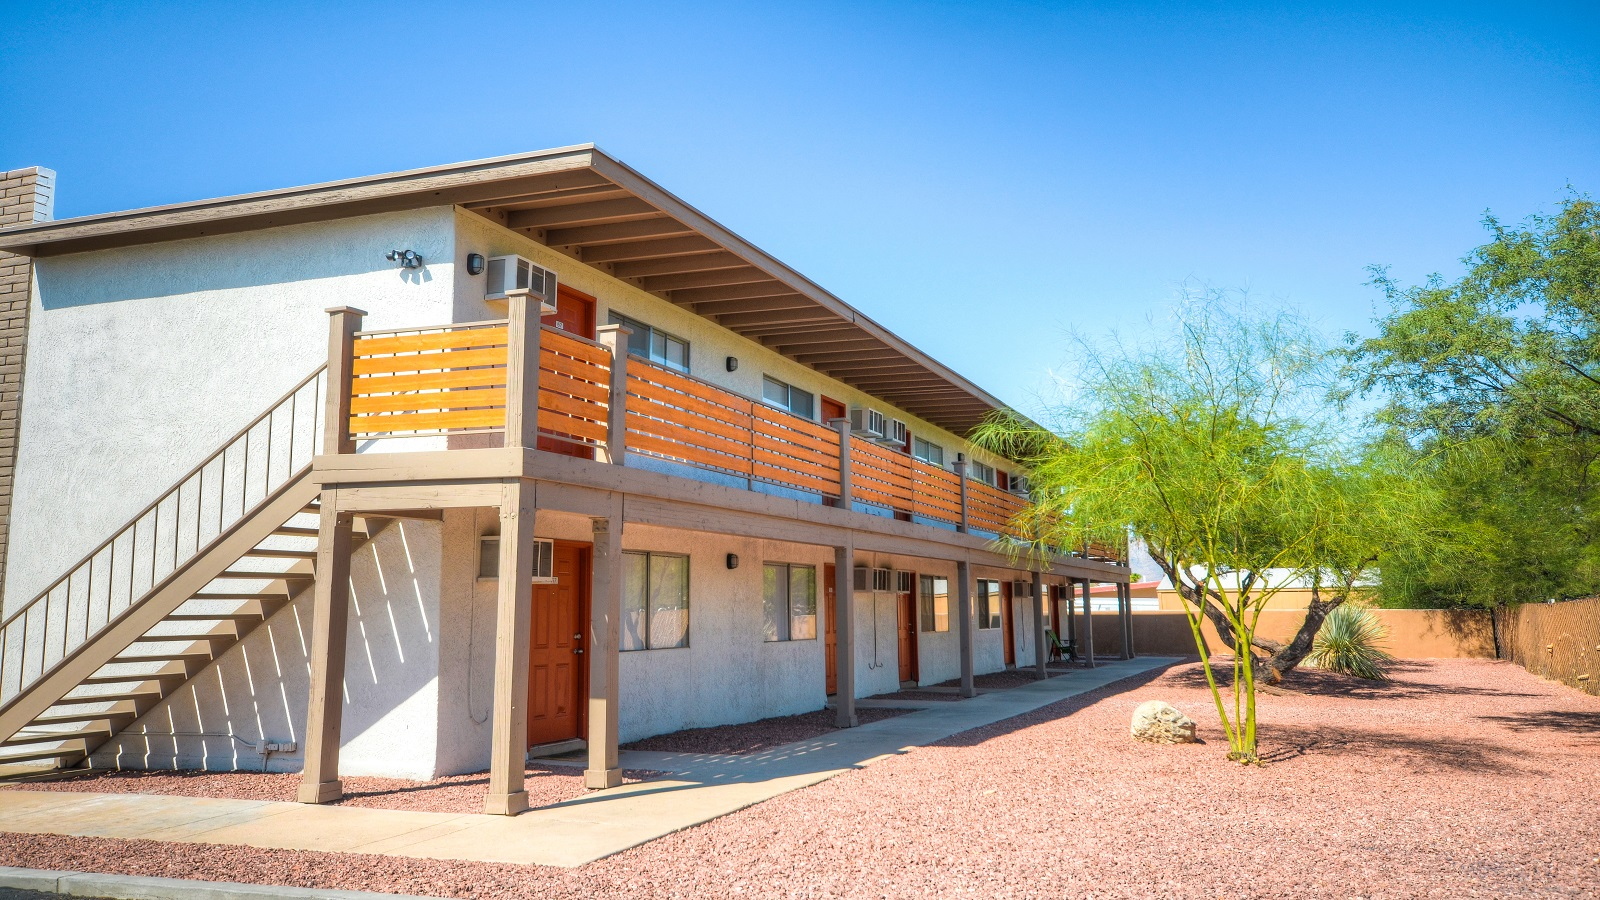 Sycamore Cove Apartments | 2458 North Sycamore Blvd, Tucson, AZ 85712 | 67 Units | Built in 1979, Renovated in 2017 | $2,385,000 | $35,597 Per Unit | $88.99 Per SF